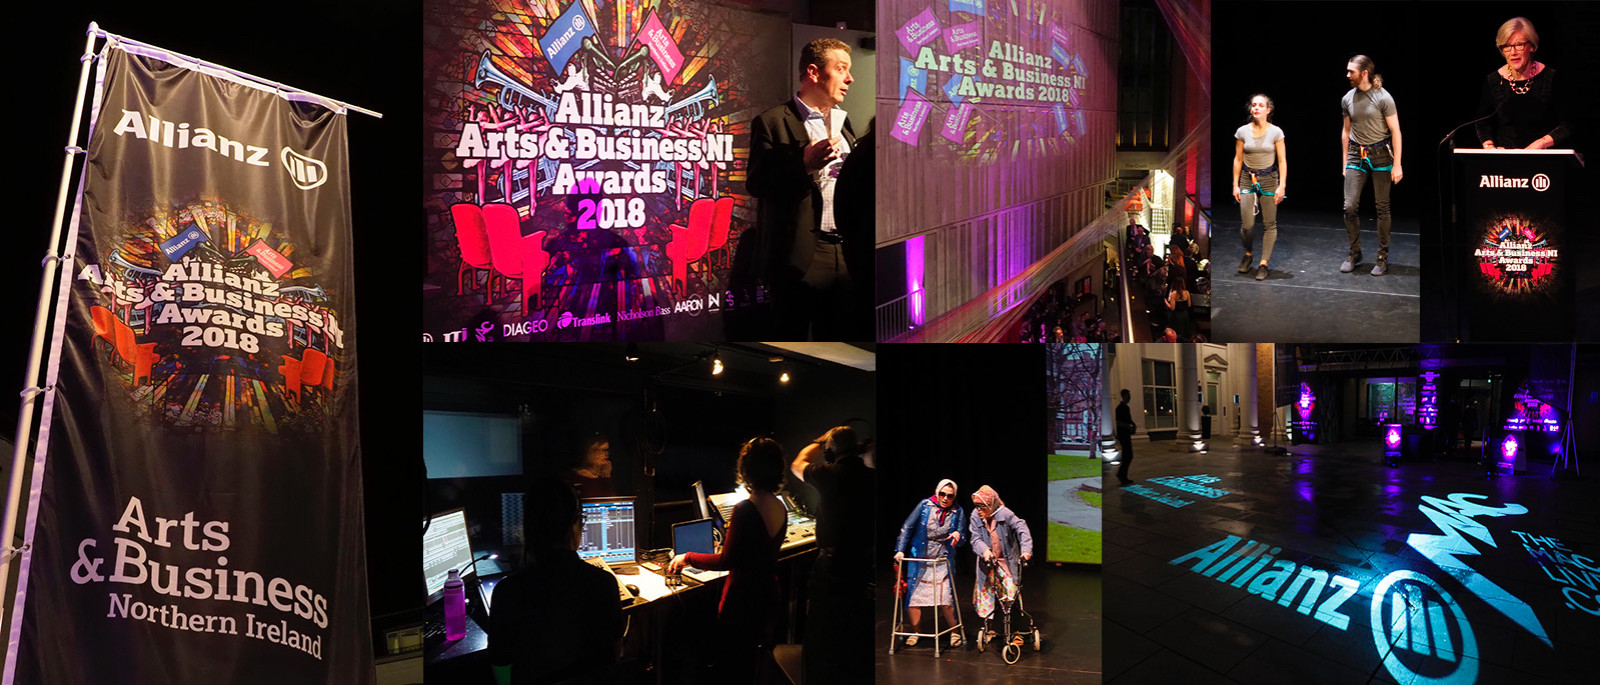 Allianz Arts & Business Awards 2018